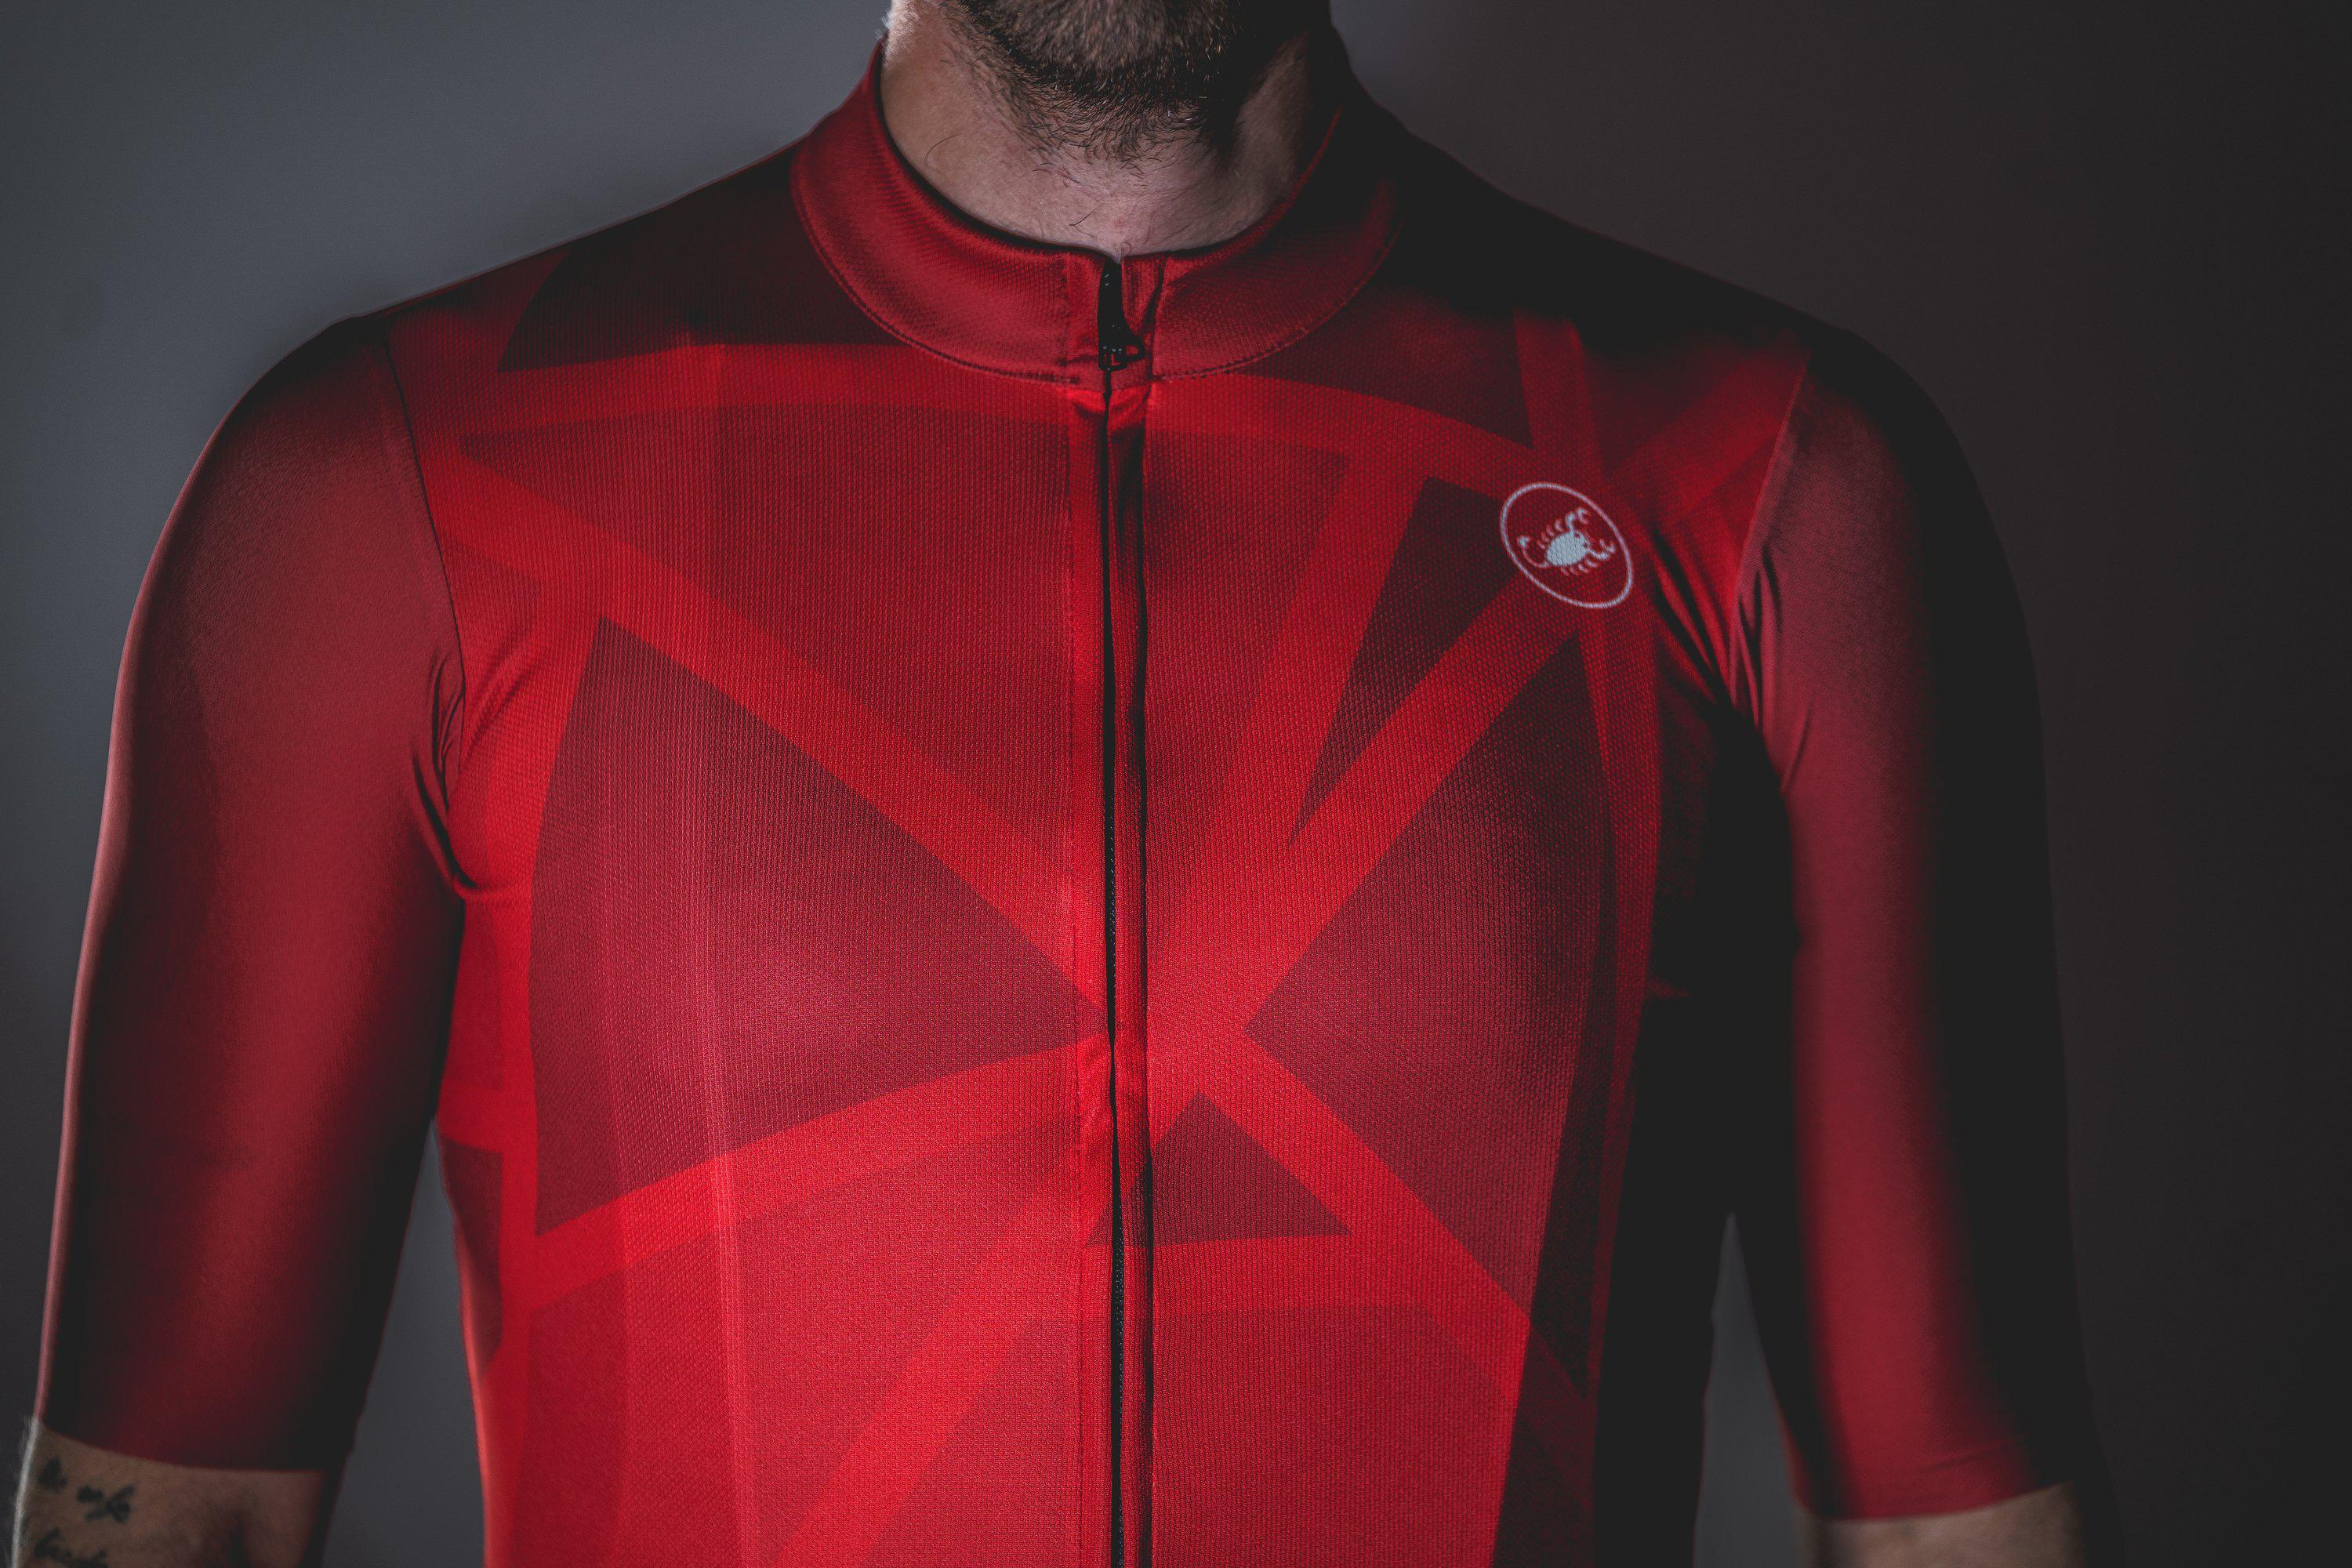 Castelli-Castelli World Champs Squadra Jersey - Pattern/Print--saddleback-elite-performance-cycling